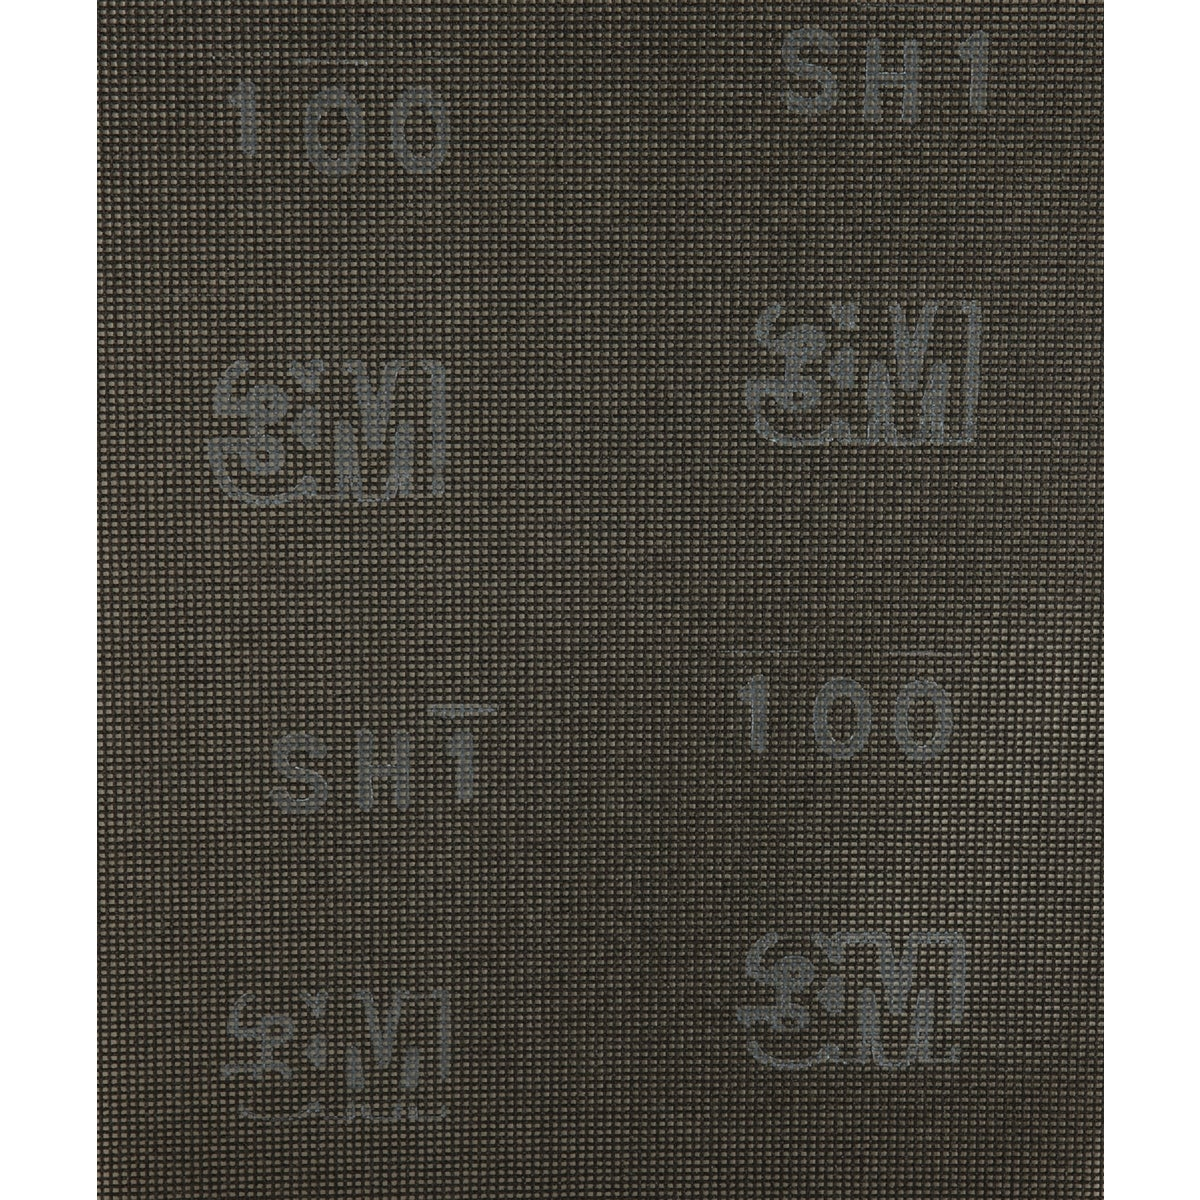 100G SCREENBACK SHEET - 10459 by 3m Co